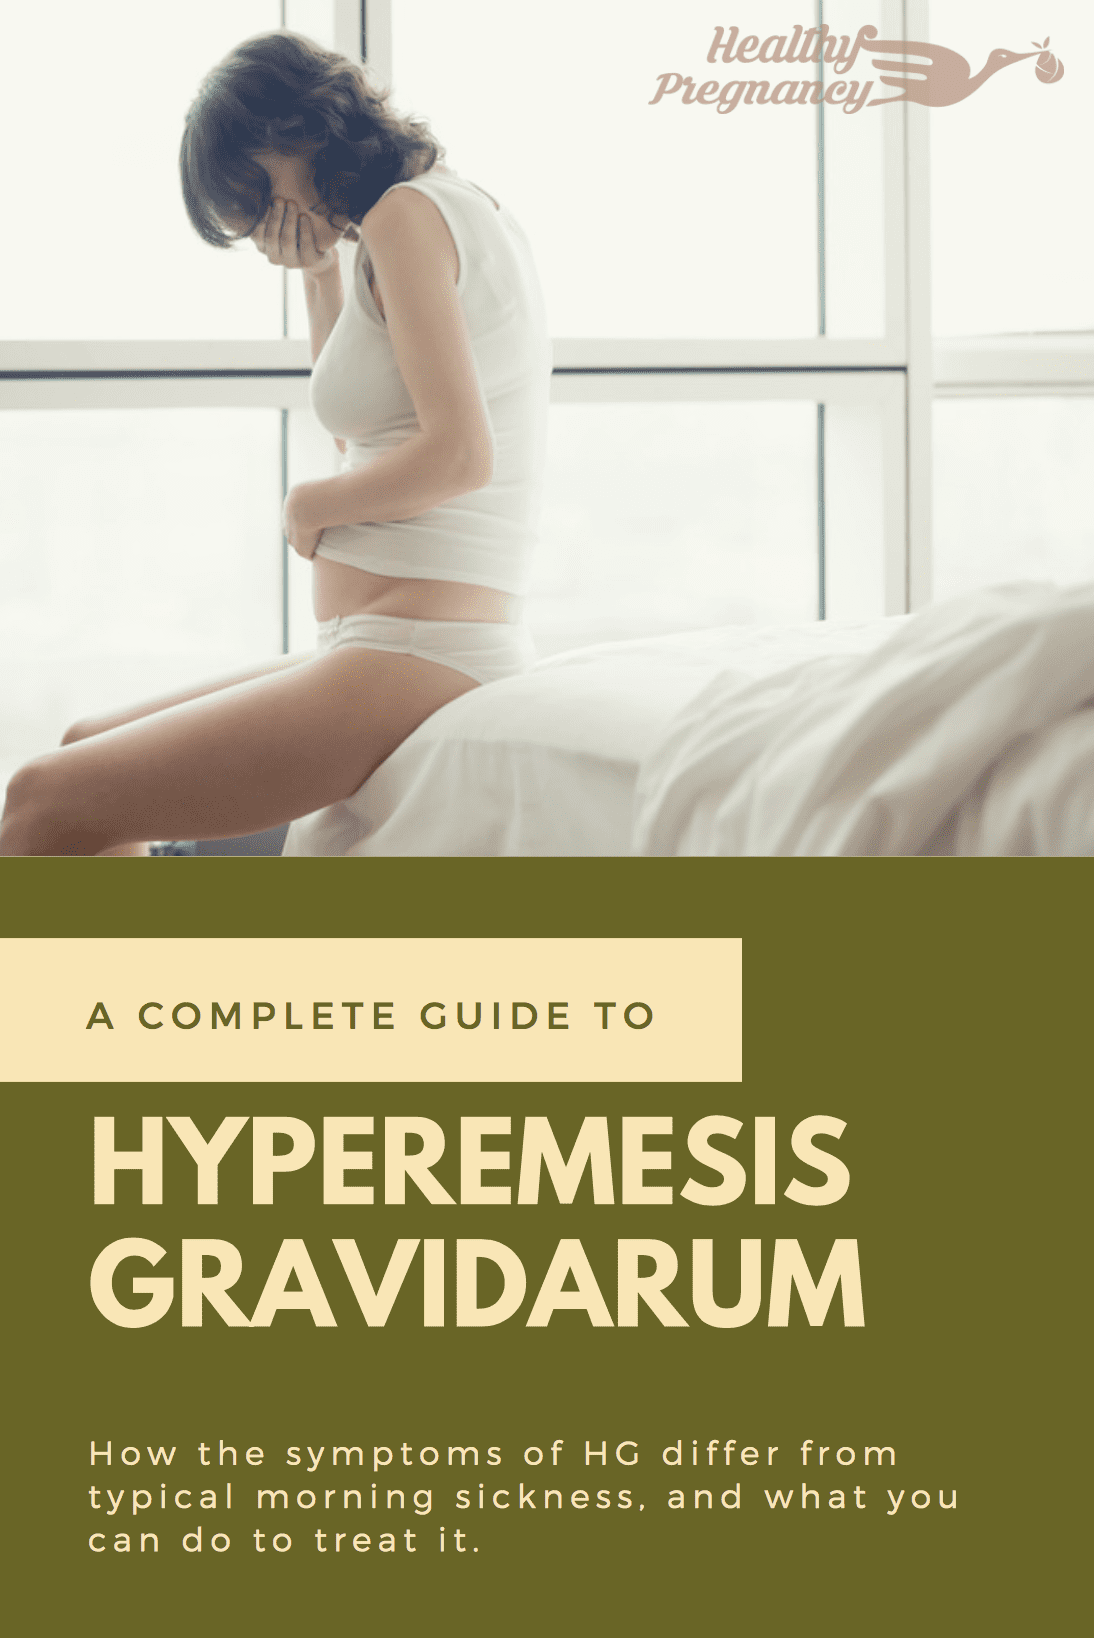 Hyperemesis Gravidarum: How the symptoms of HG differ from typical morning sickness, and what you can do to treat it.